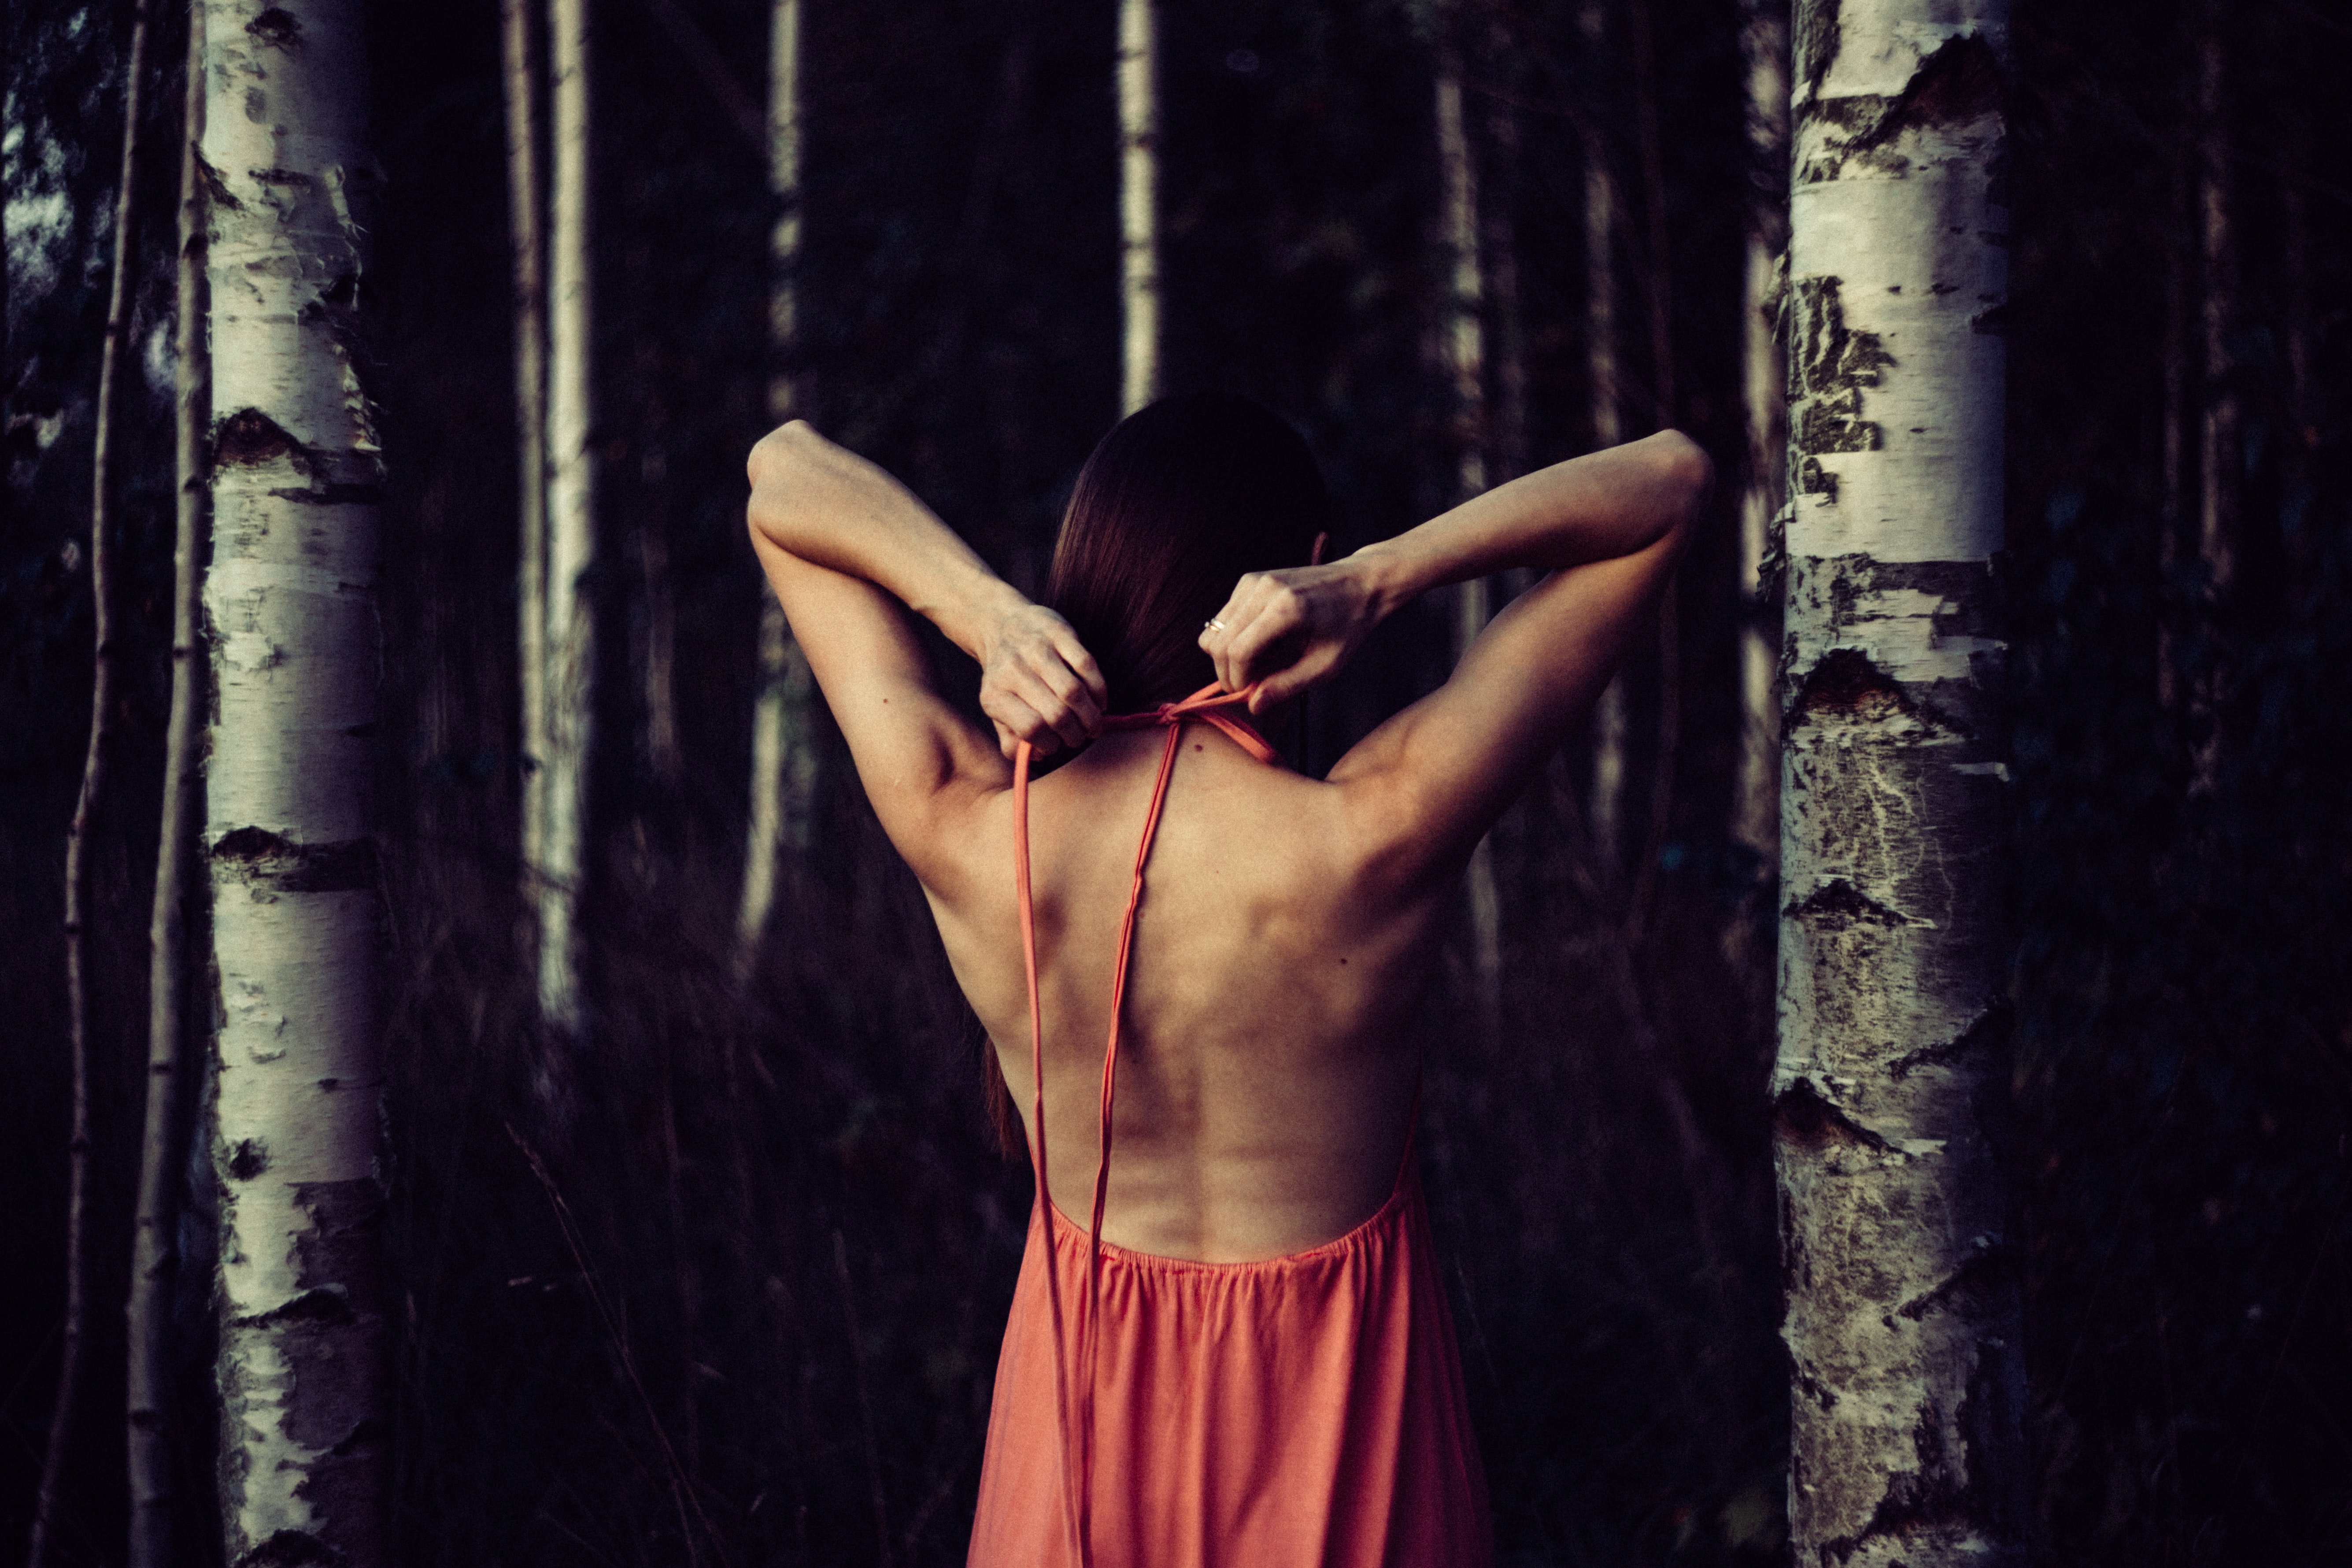 A girl stretching with her arms behind her back inside a forest.